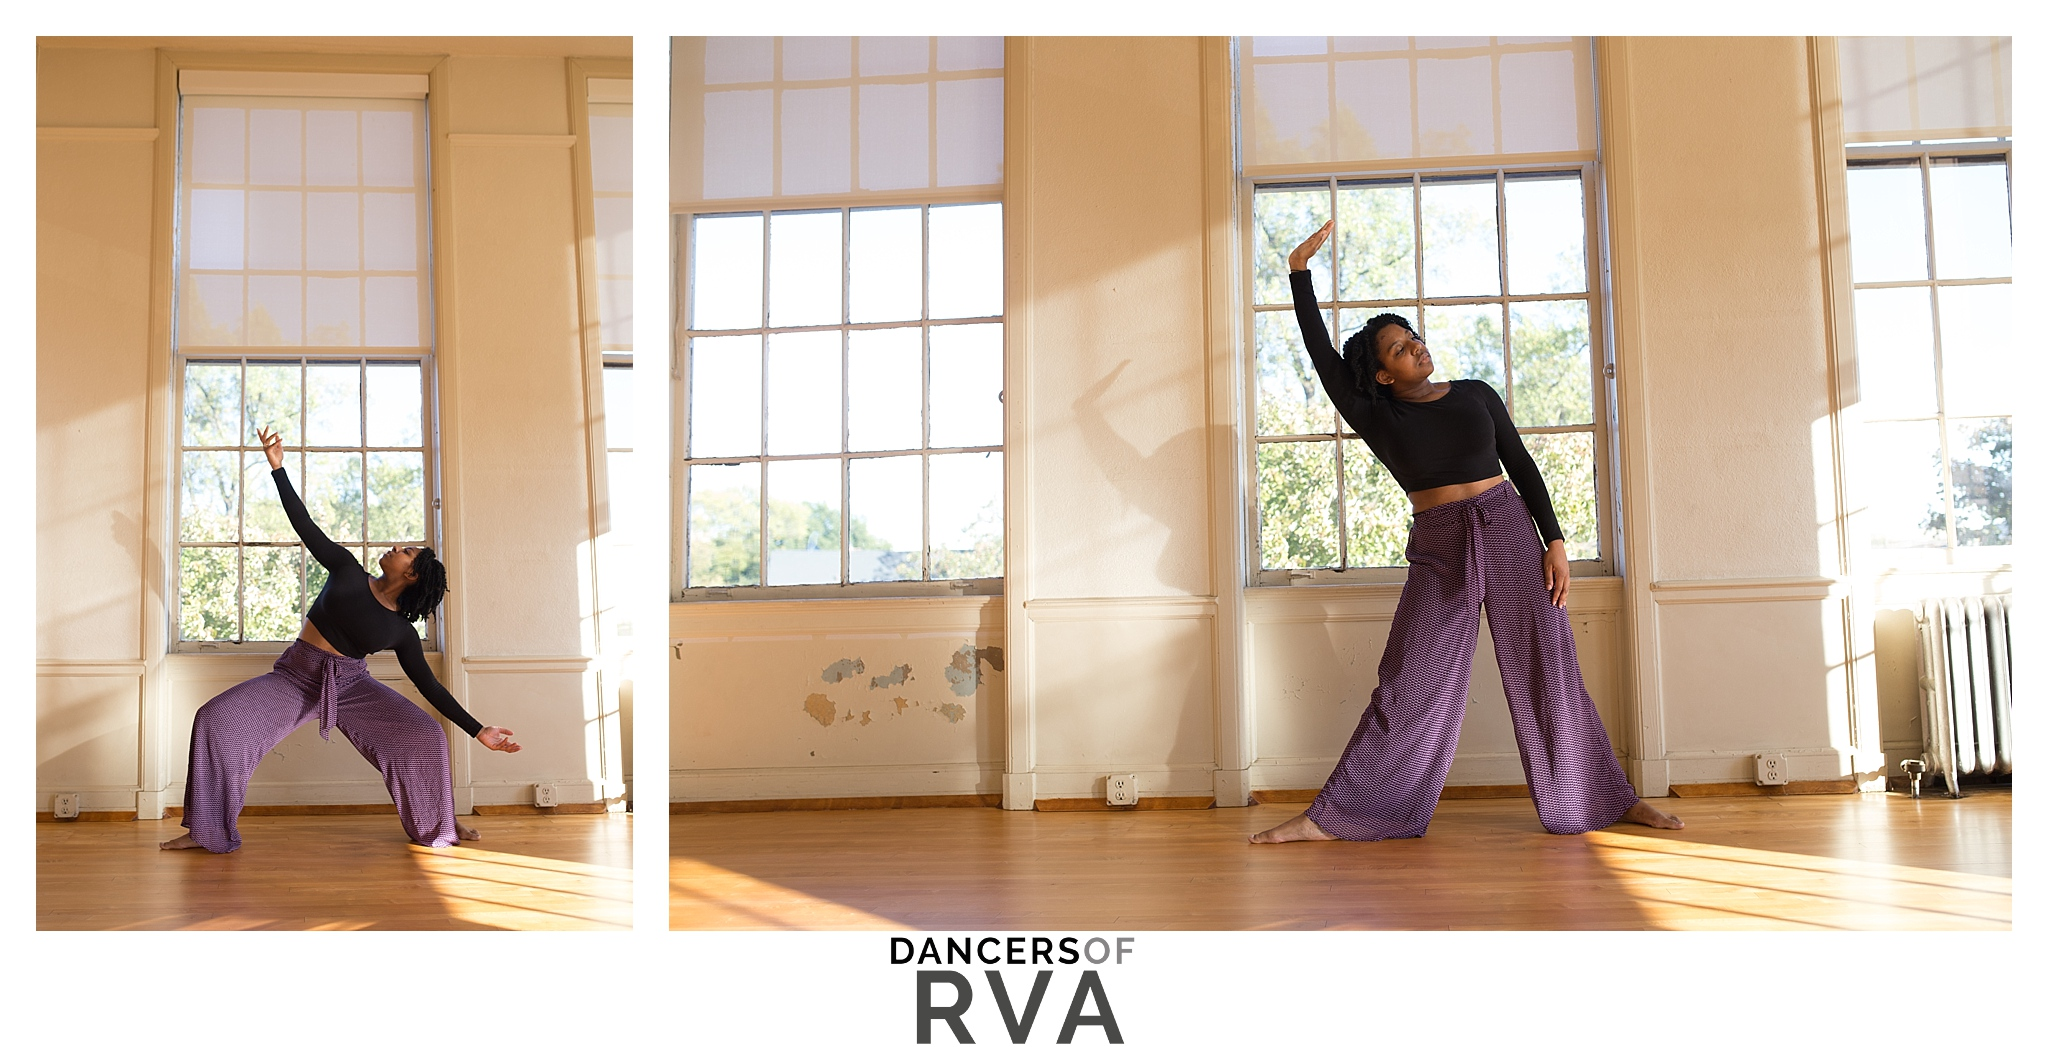 VCU-Dance-Photography-Session-VCU-Arts-Richmond-VA_0016.jpg